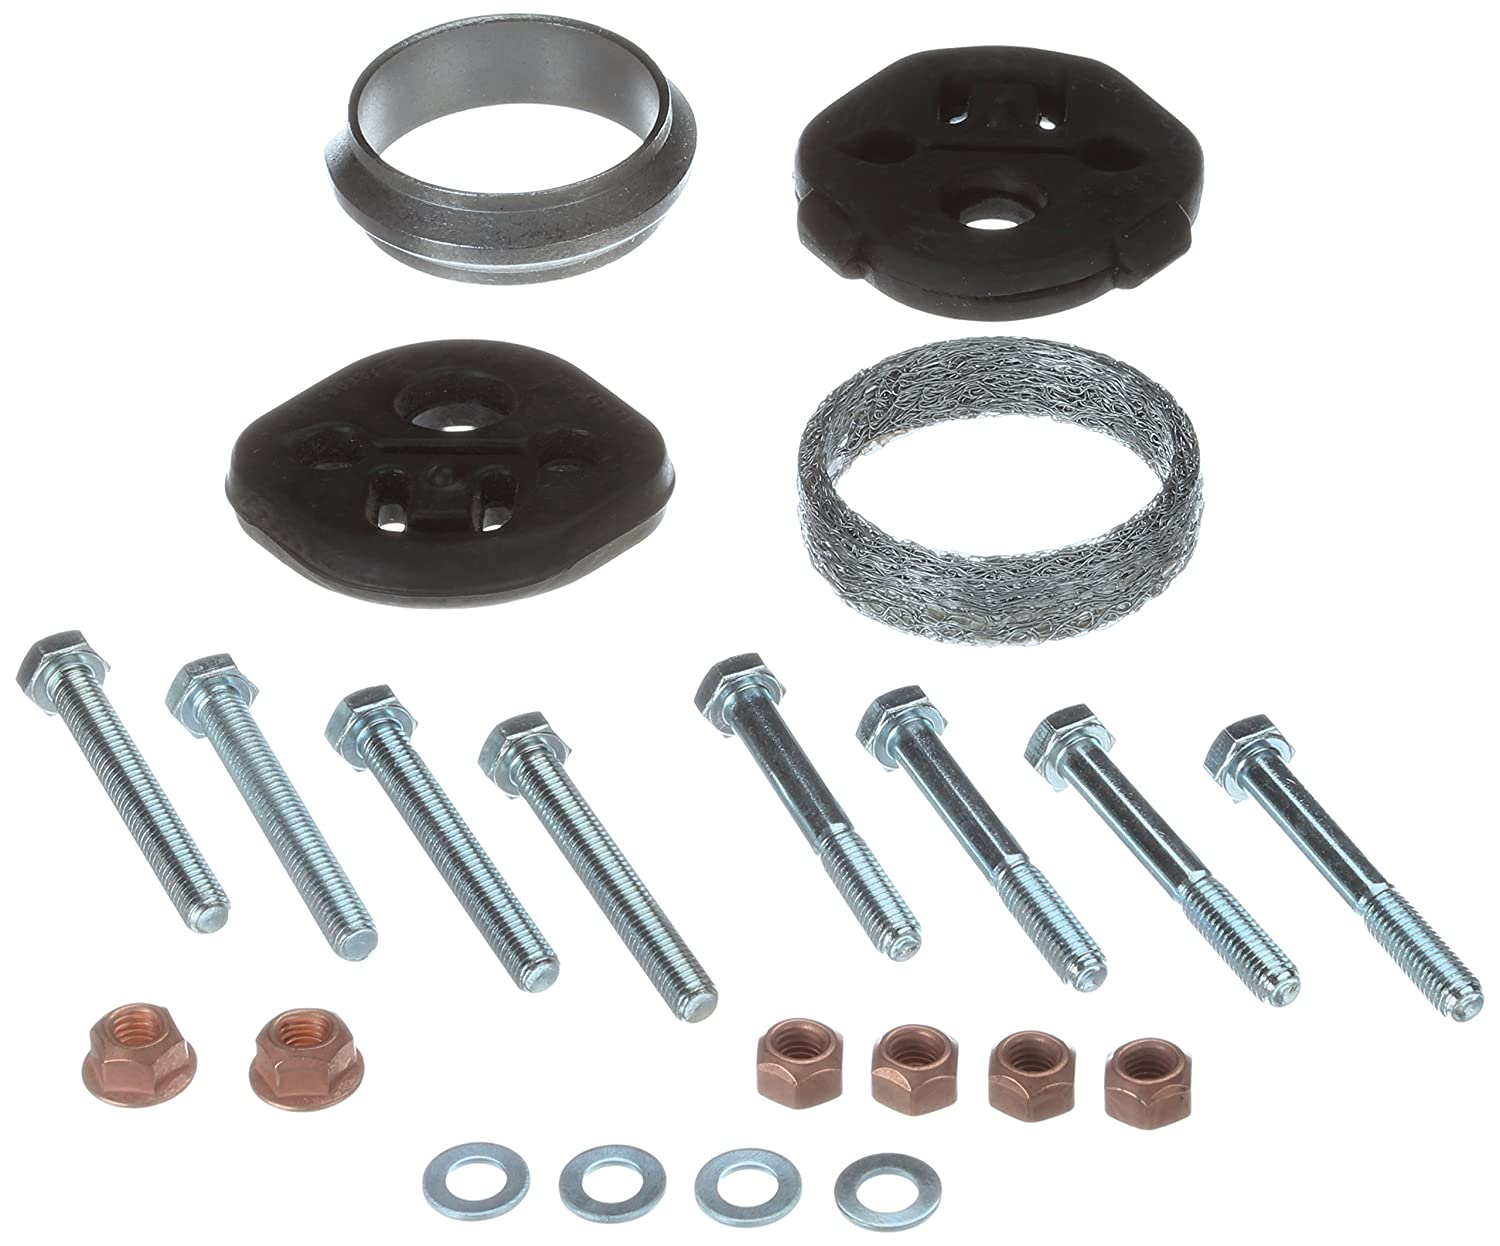 HJS 82 13 2469 Mounting Kit, catalytic converter